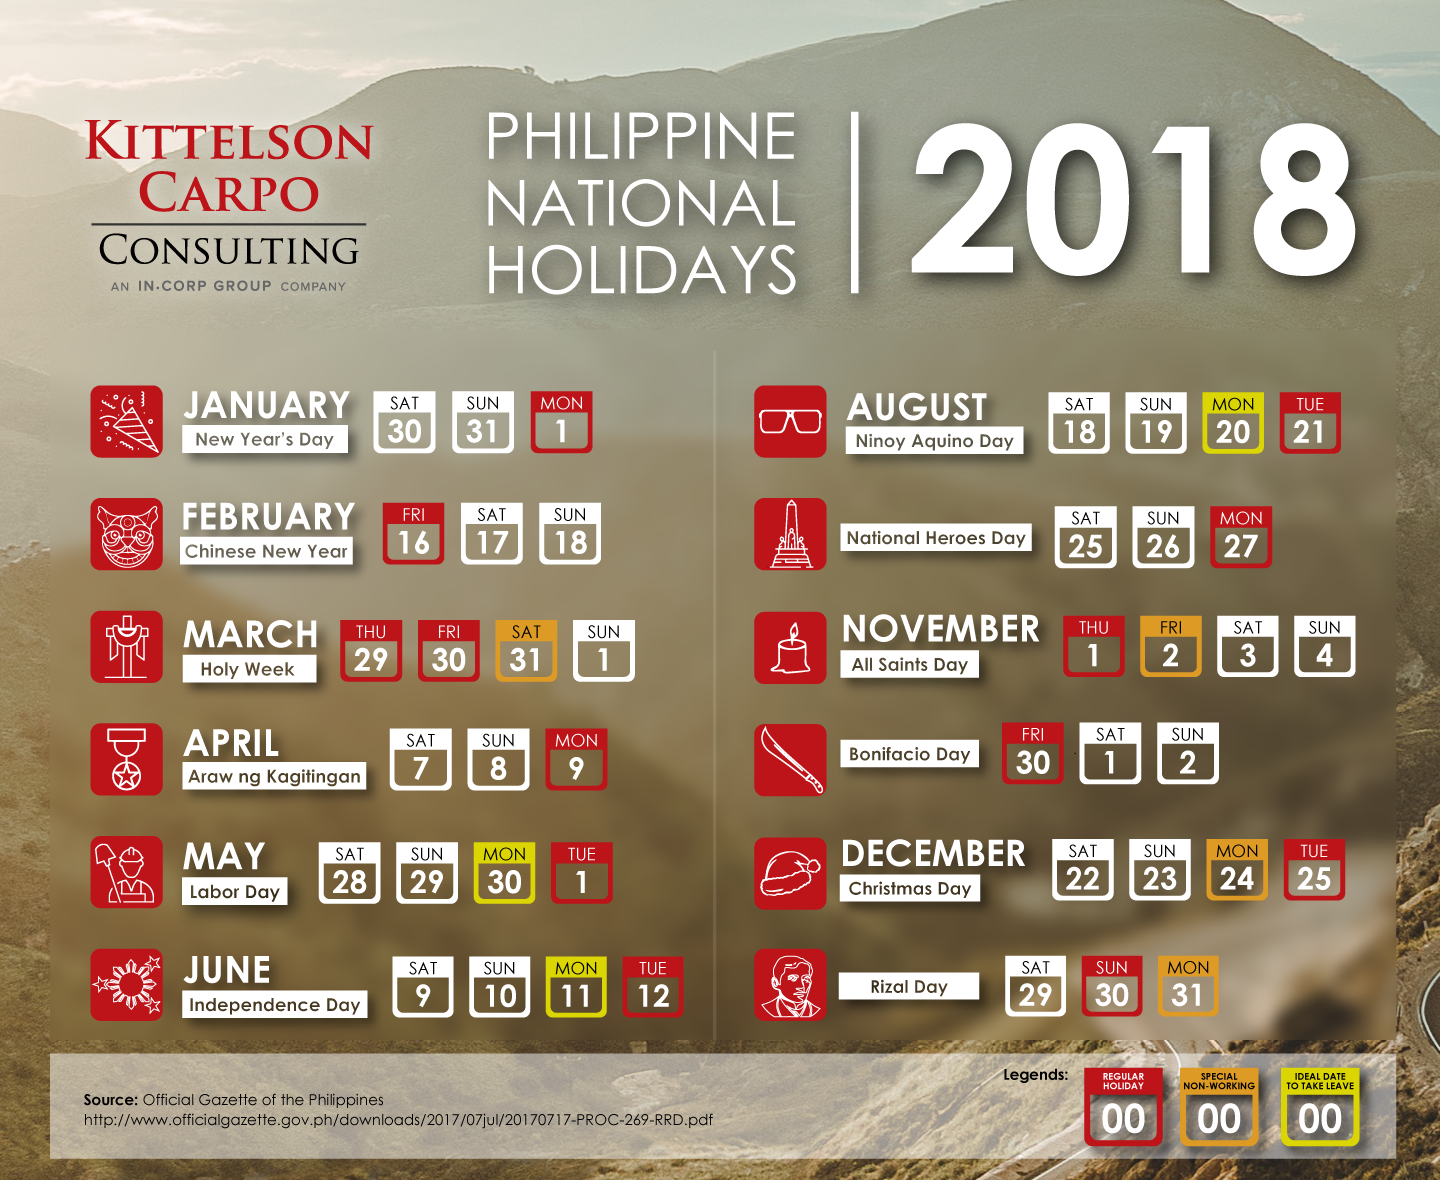 Philippine National Holidays for 2018